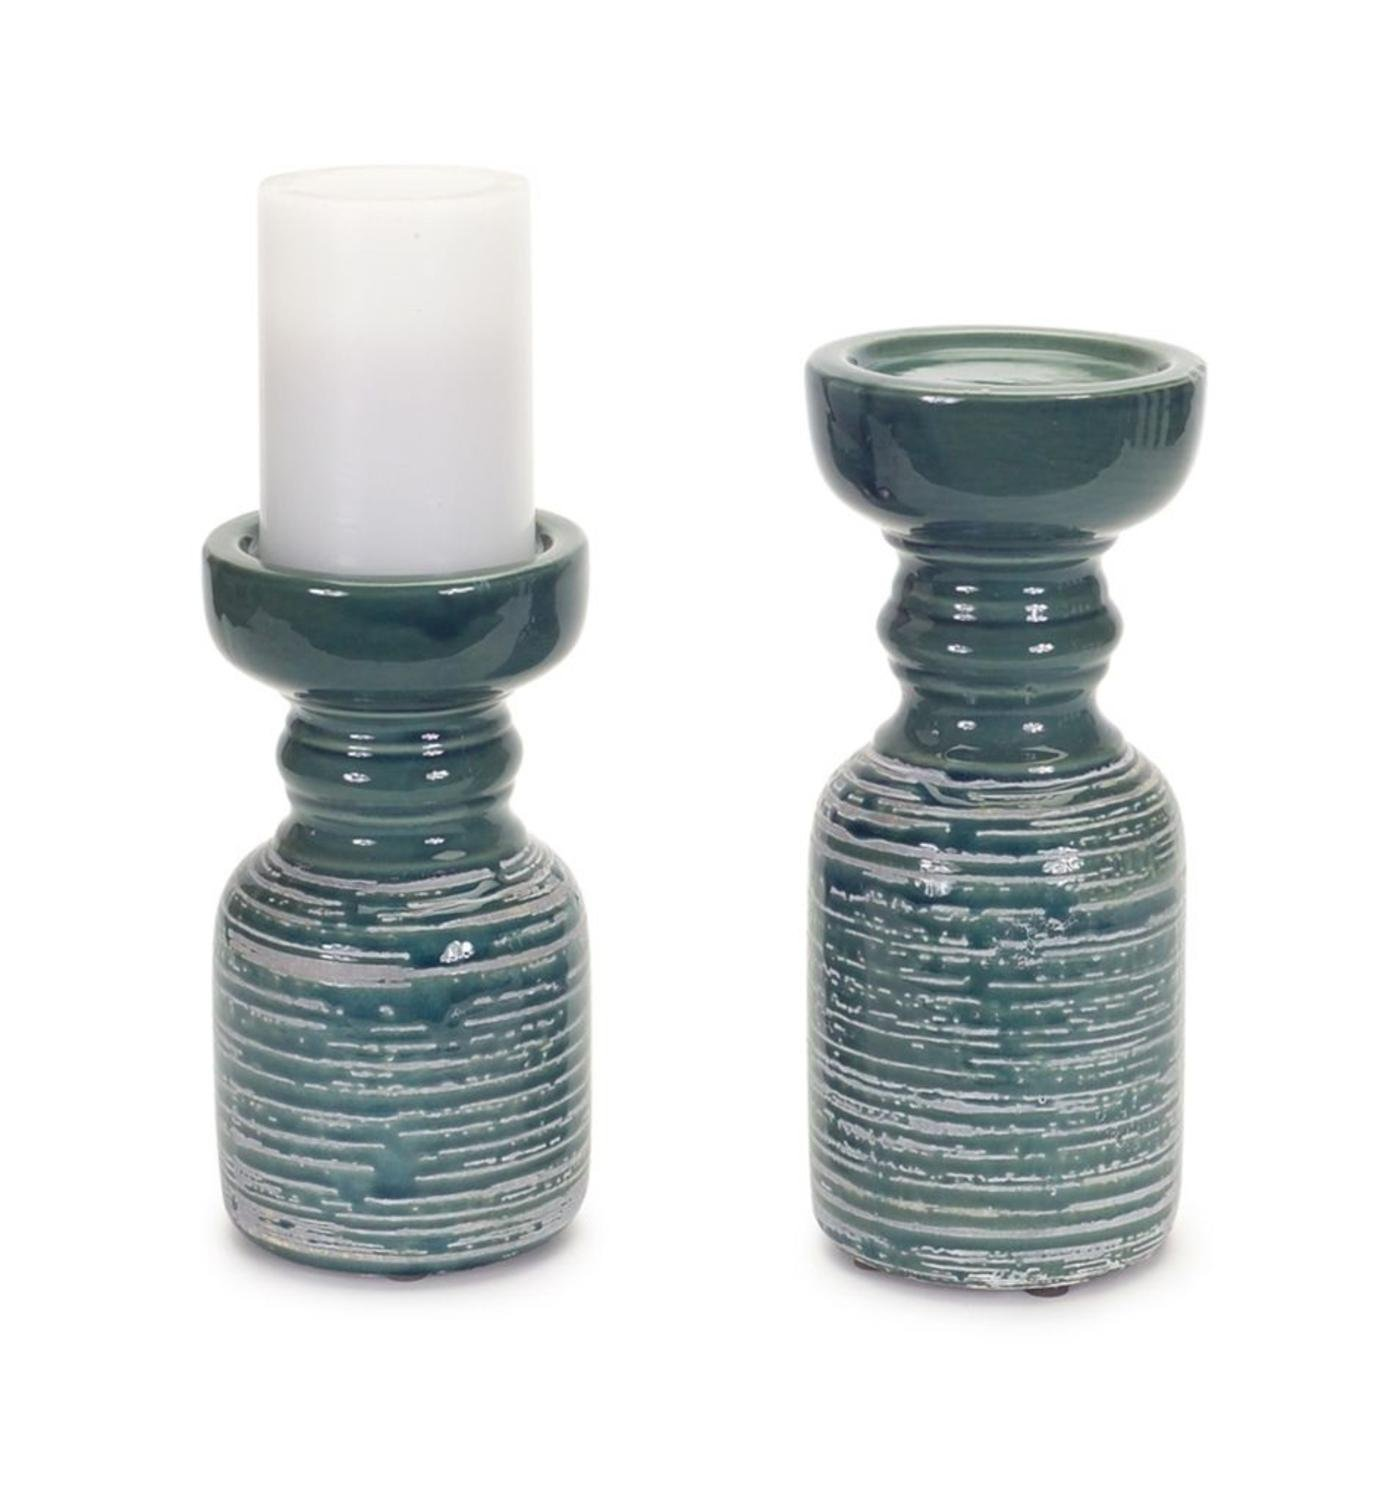 Set of 2 Exquisite White and Dark Turquoise Clay Pillar Candle Holders 9.75""